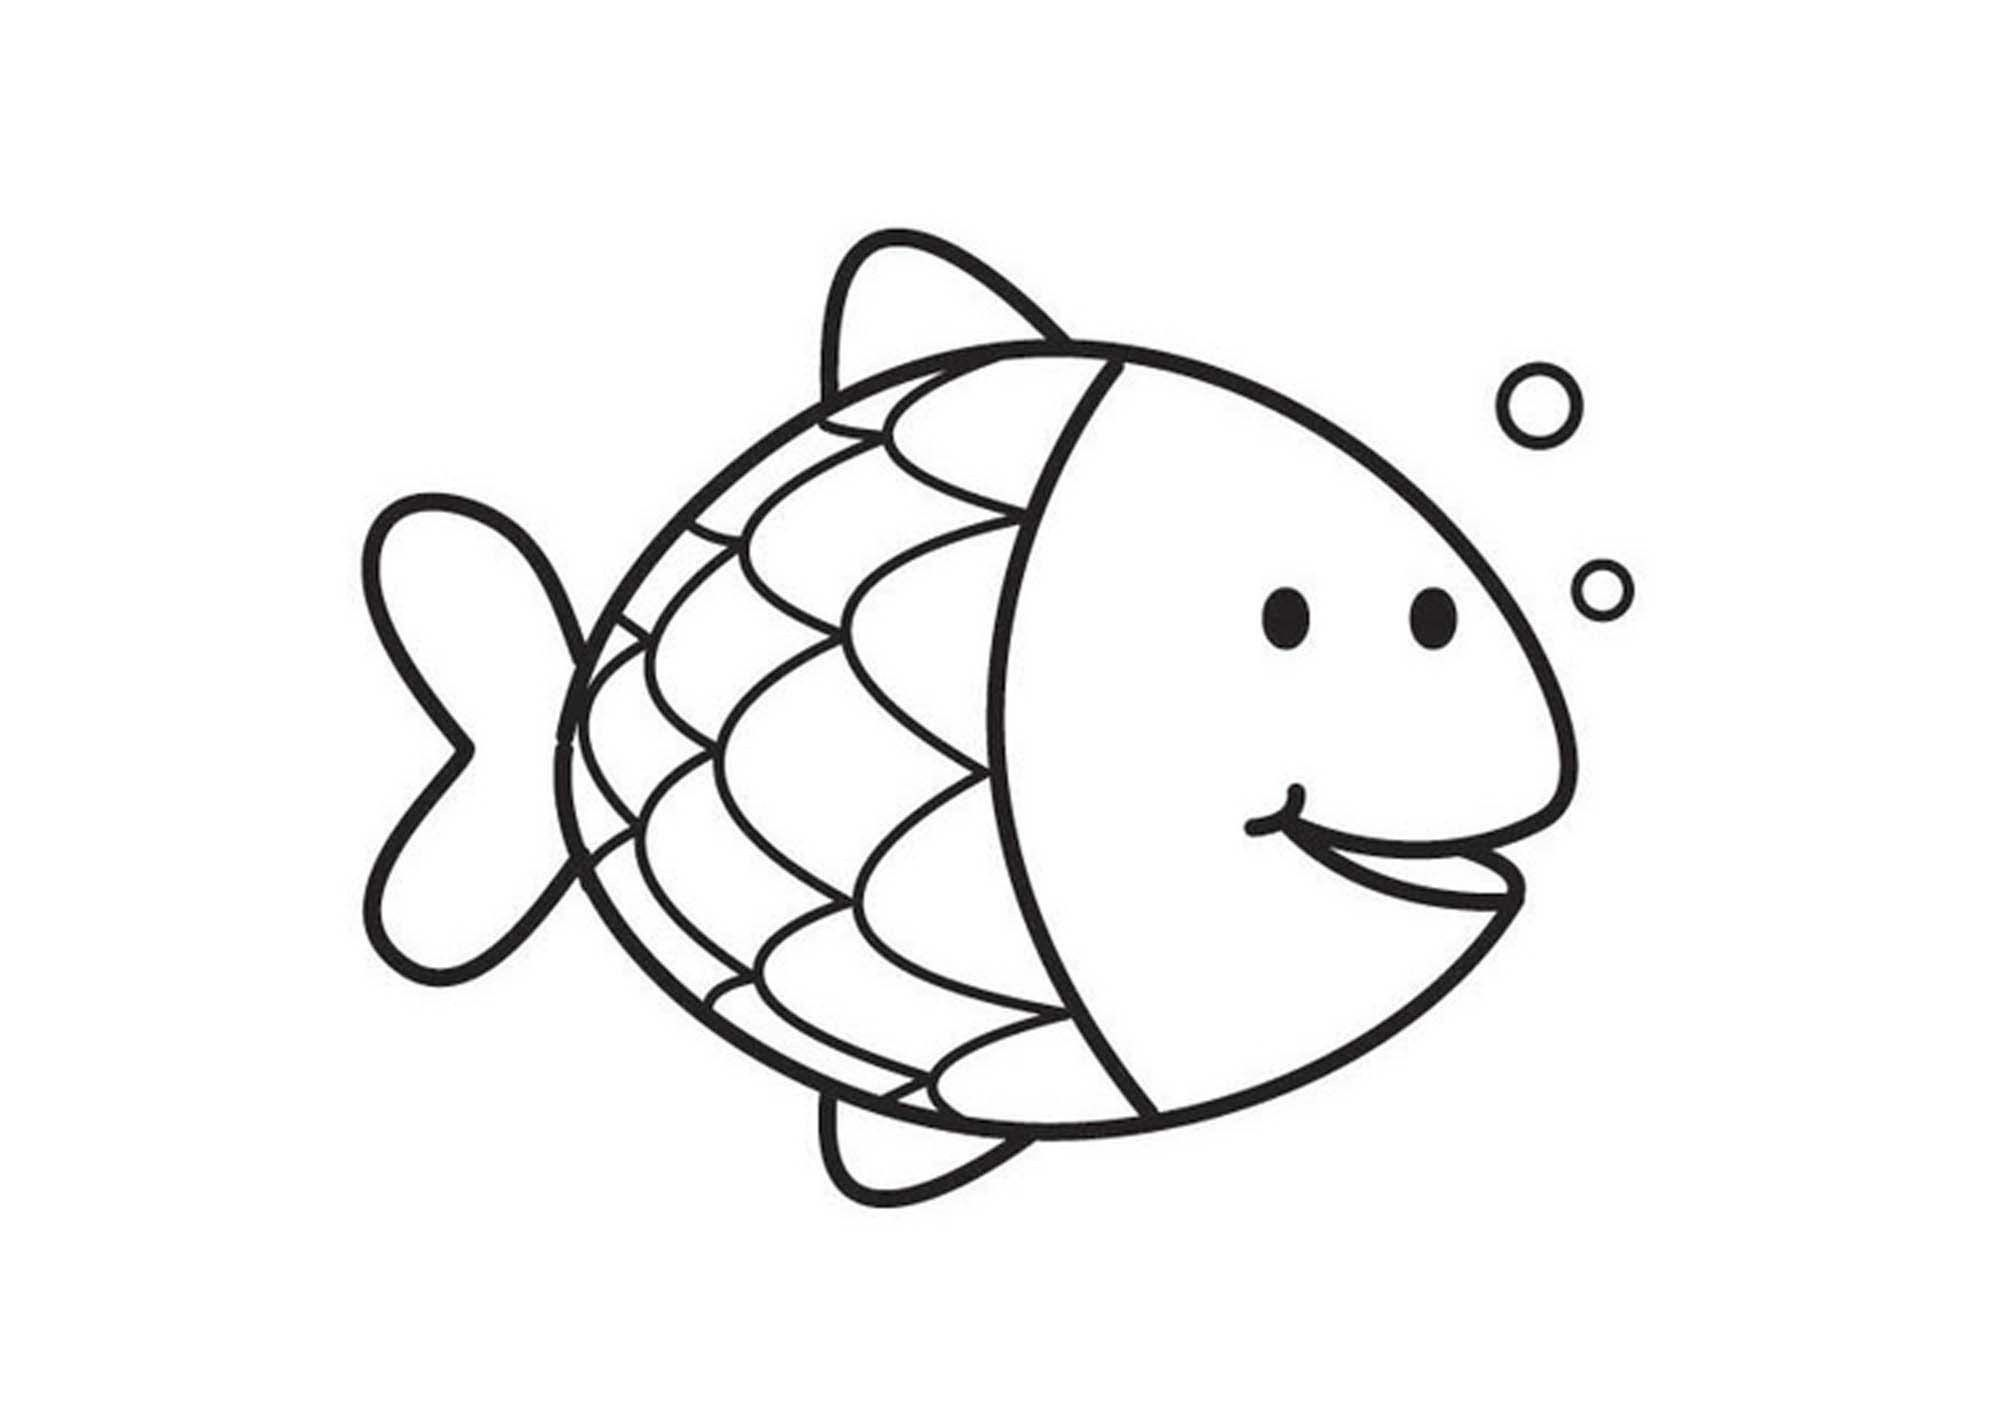 Cute Fish Coloring Pages For Kids From The Finding Nemo Movie Free Coloring Sheets Fish Coloring Page Rainbow Fish Coloring Page Rainbow Fish